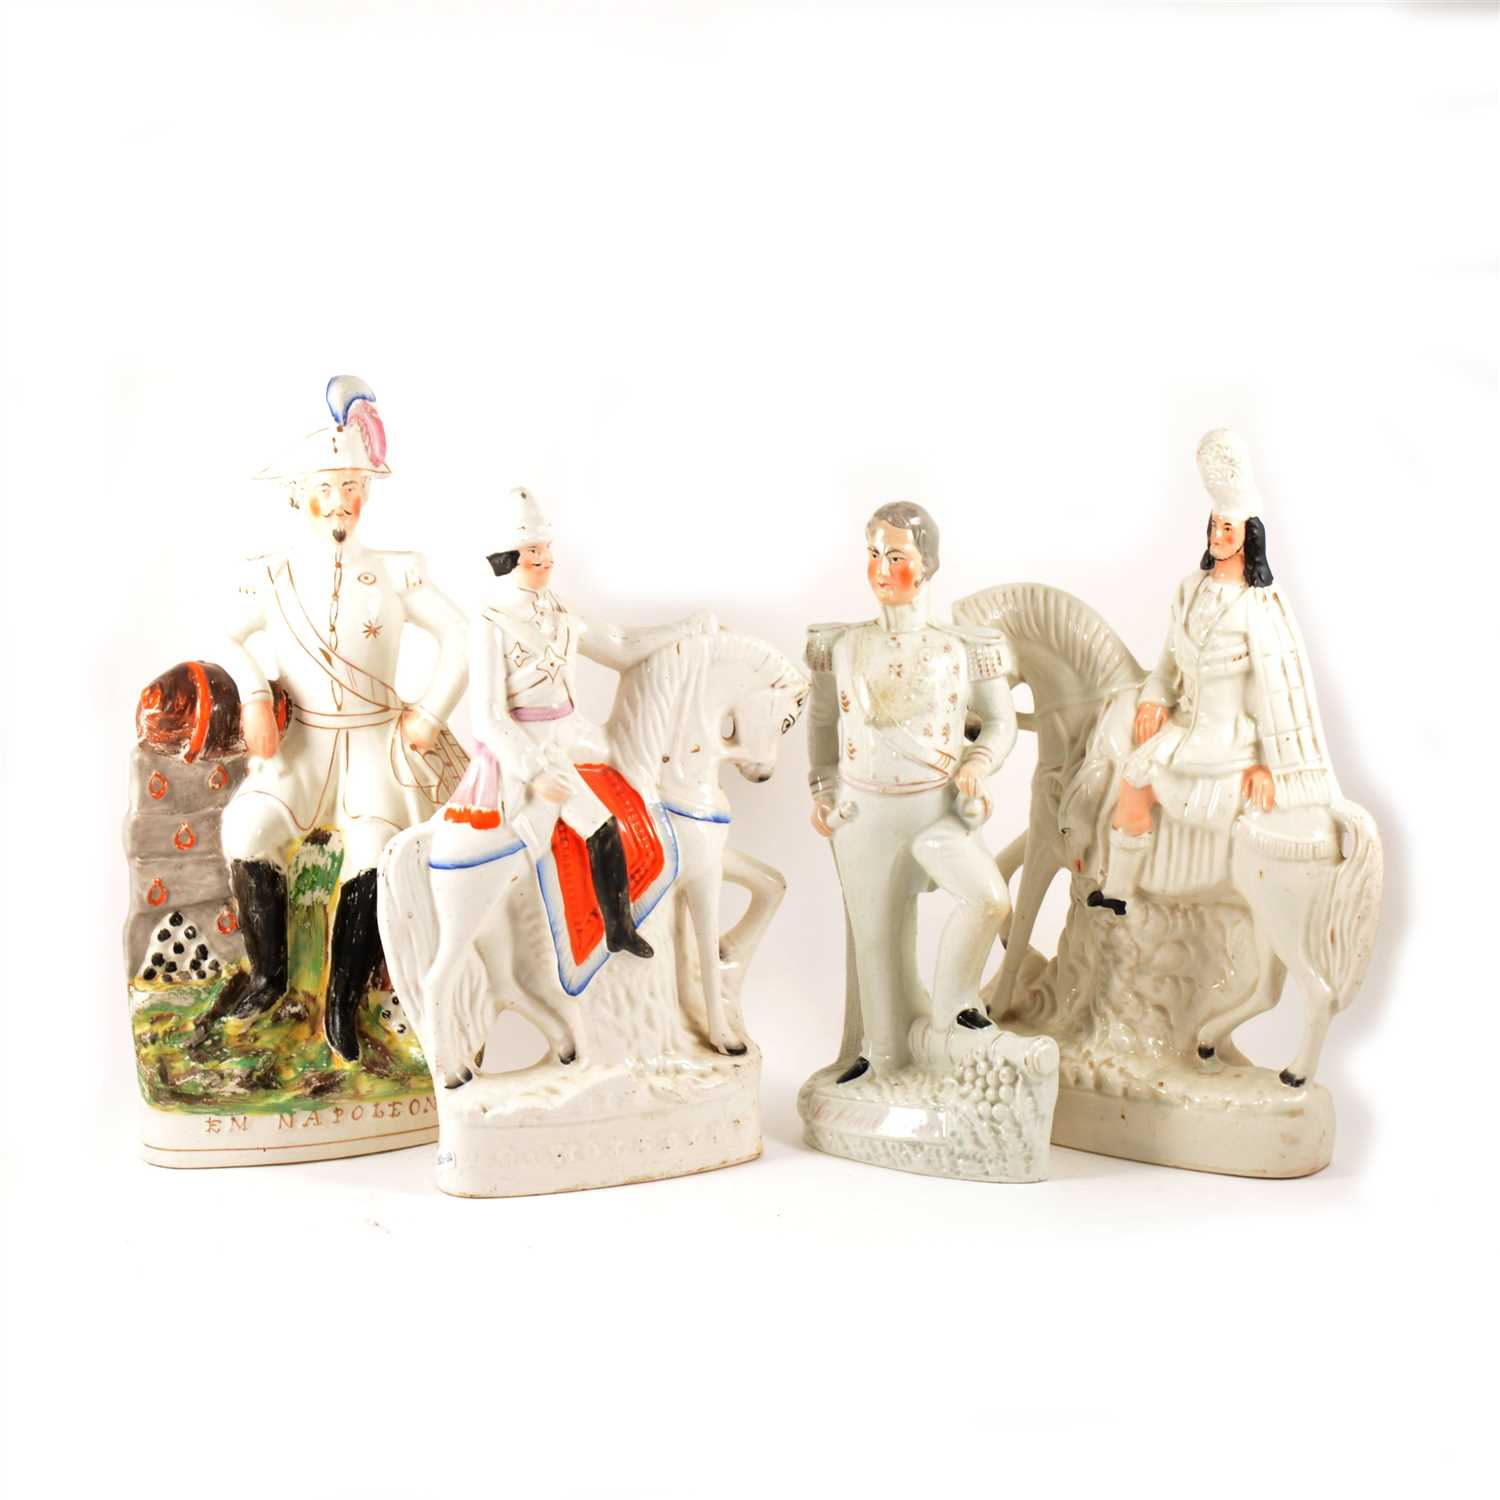 Lot 31-A Staffordshire figure, Emperor Napoleon, and four other Staffordshire figures.